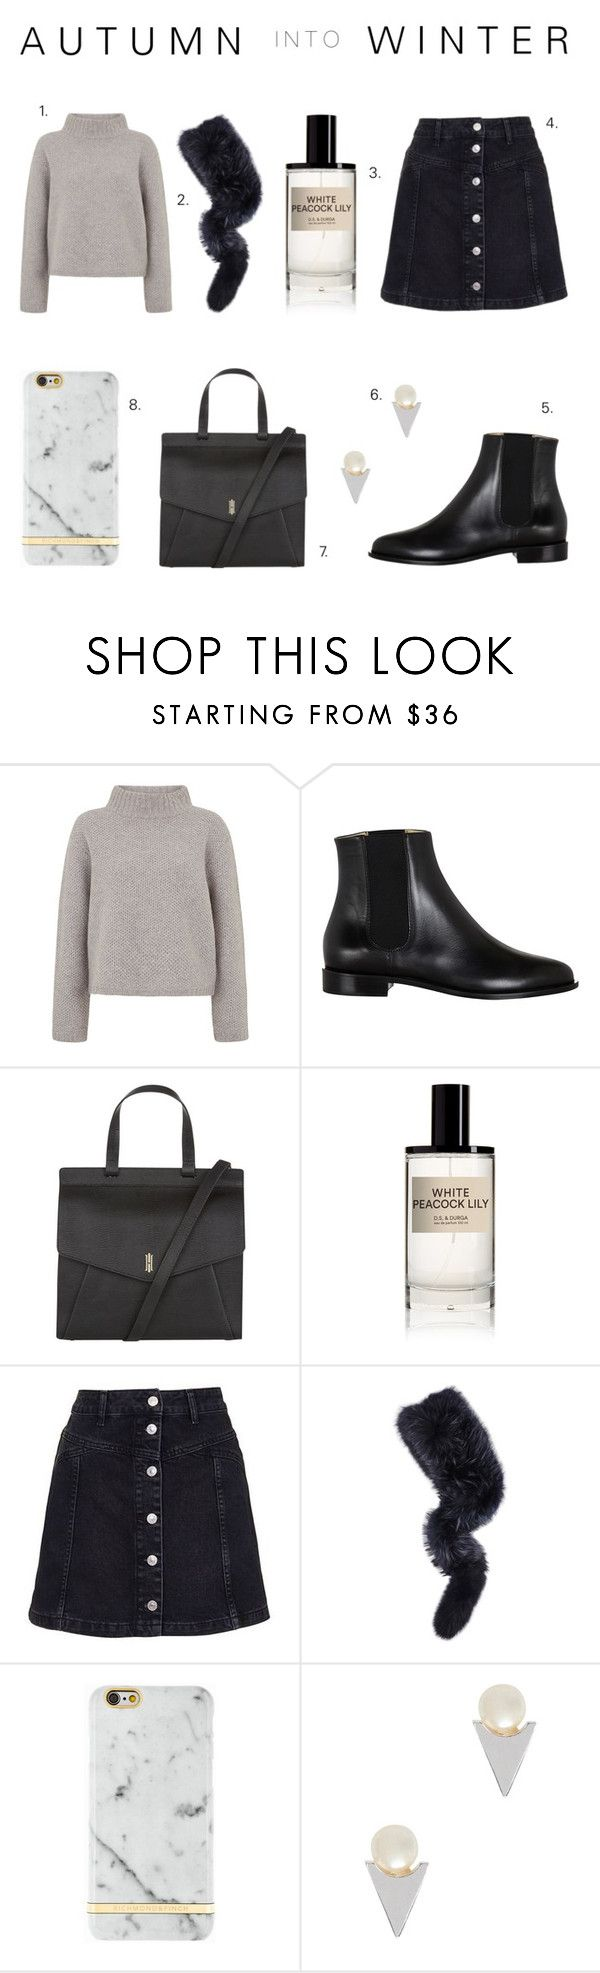 """Autumn to Winter - Chelsea Boots"" by rachaelselina ❤ liked on Polyvore featuring Hobbs, D.S. & DURGA, Topshop, Charlotte Simone, Richmond & Finch, John & Pearl and chelseaboots"